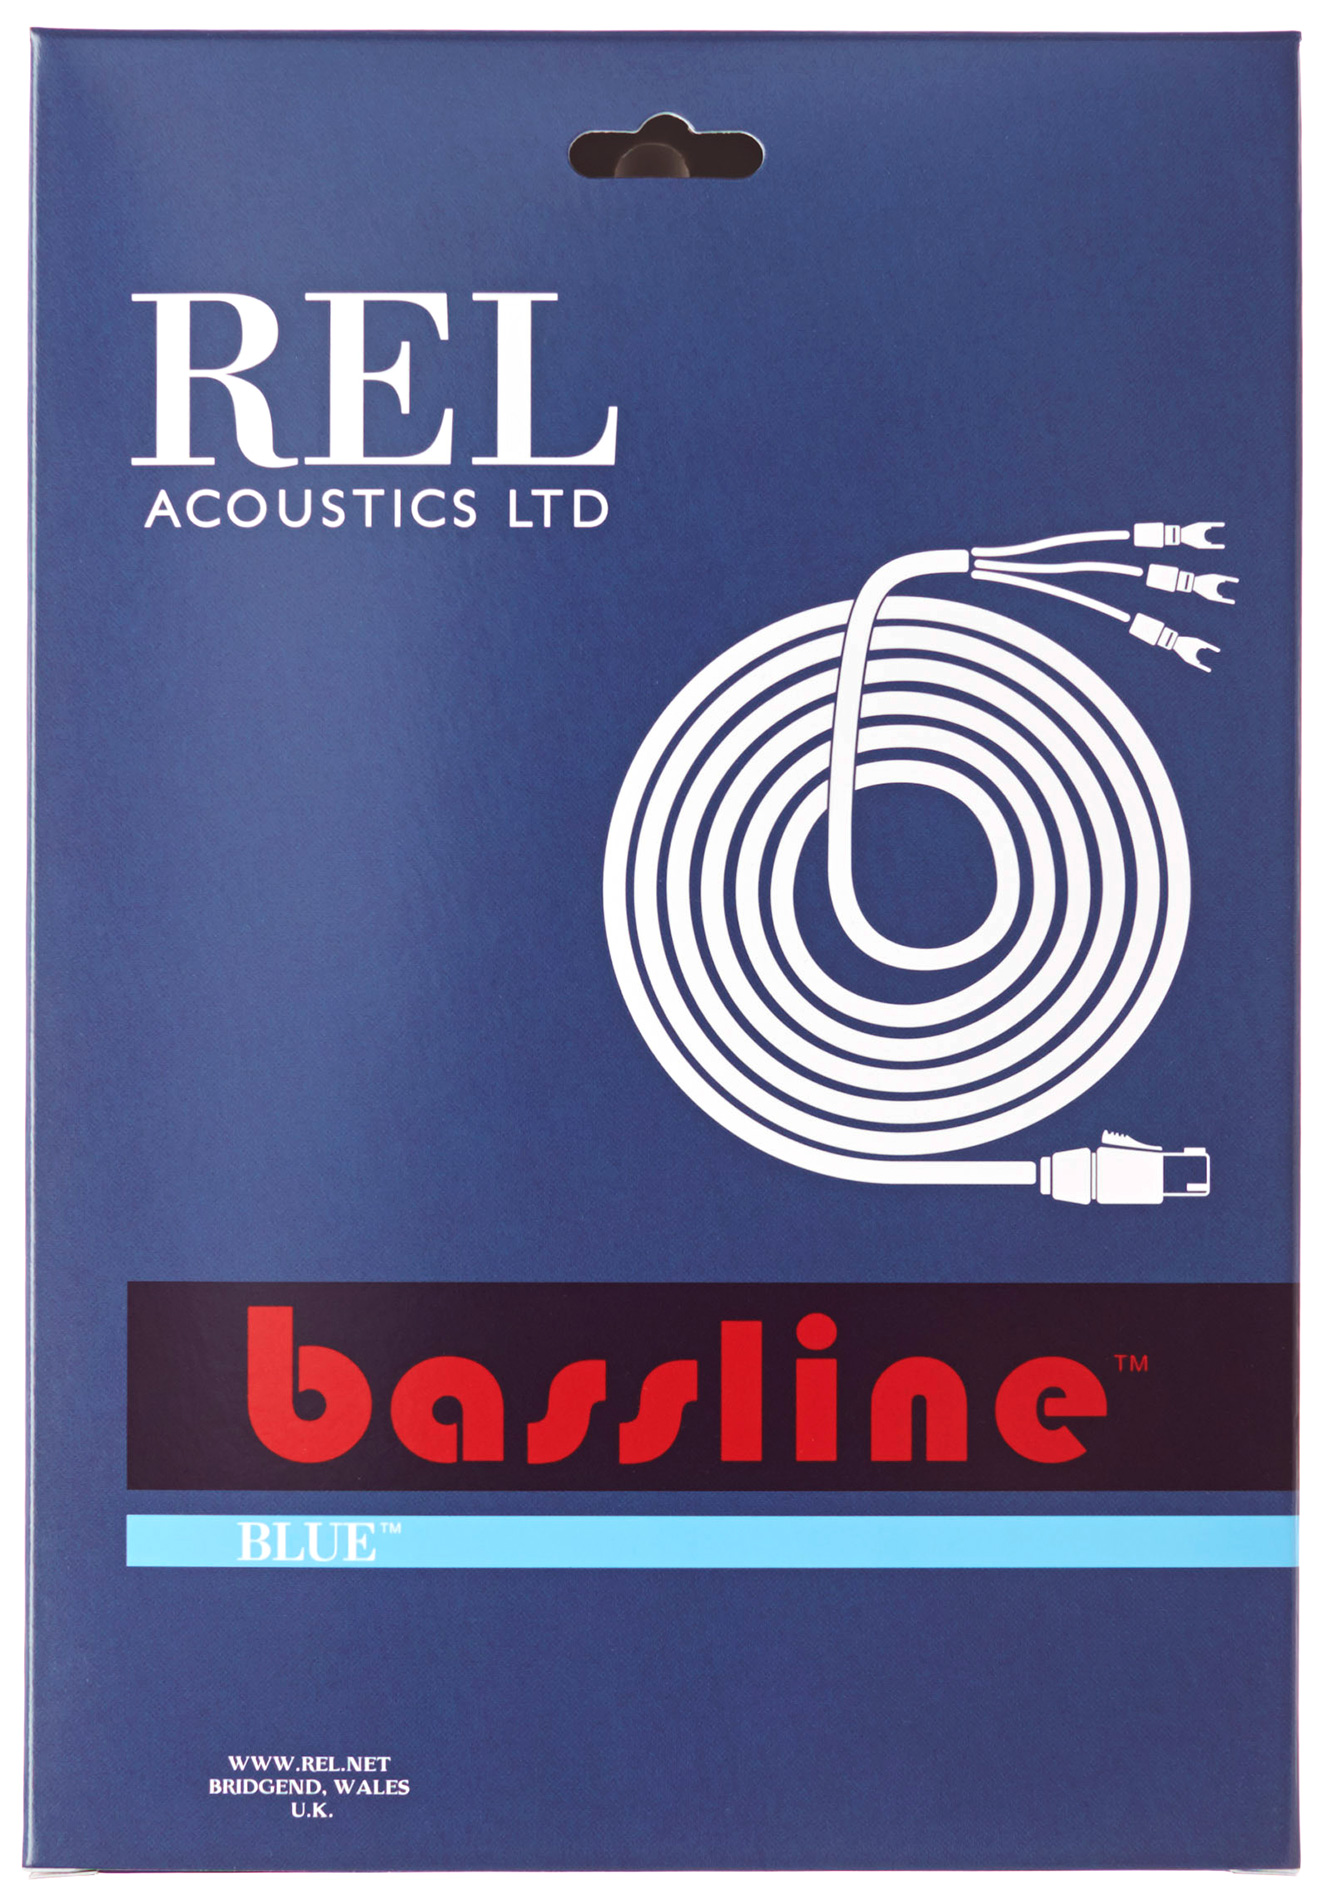 Bassline Cable21340 rel bassline blue subwoofer cable rel speakon wiring diagram at readyjetset.co